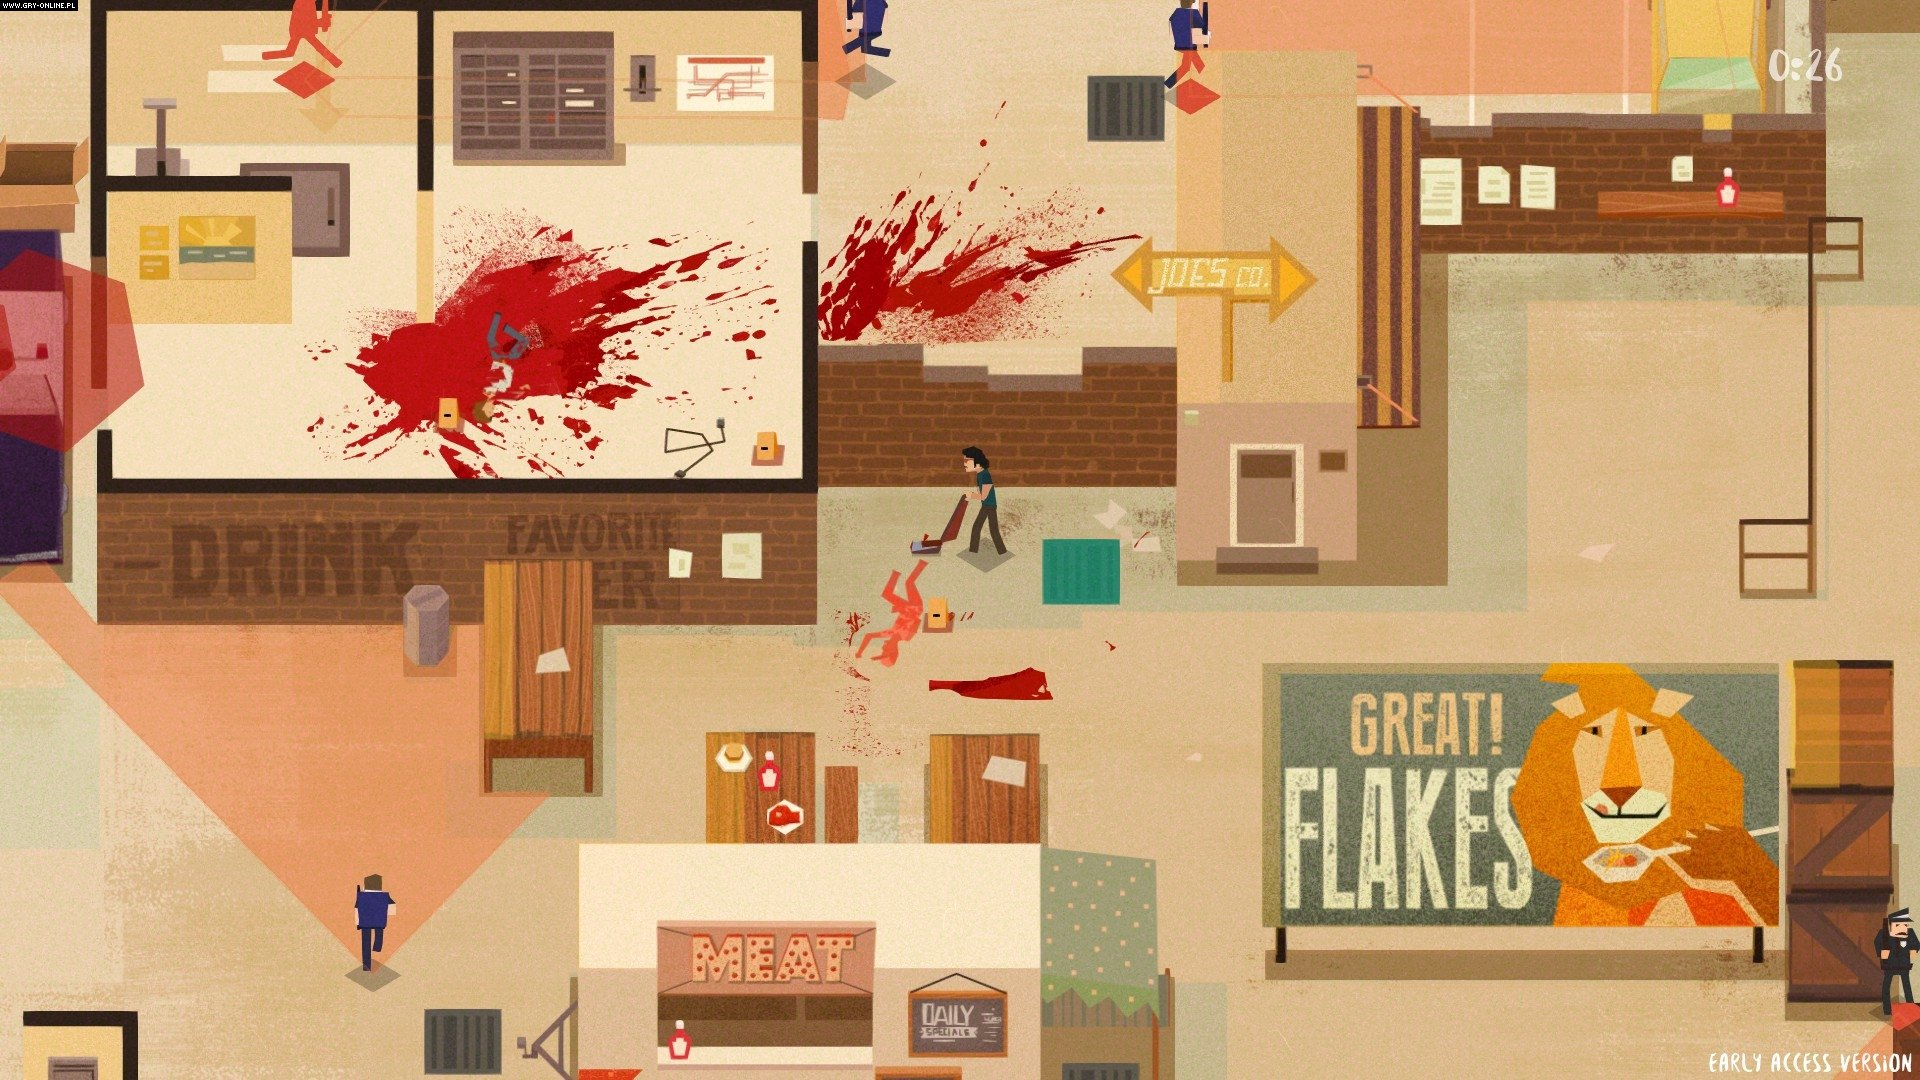 Serial Cleaner PC, PS4, XONE, Switch Gry Screen 4/28, iFun4all / Draw Distance, Curve Digital